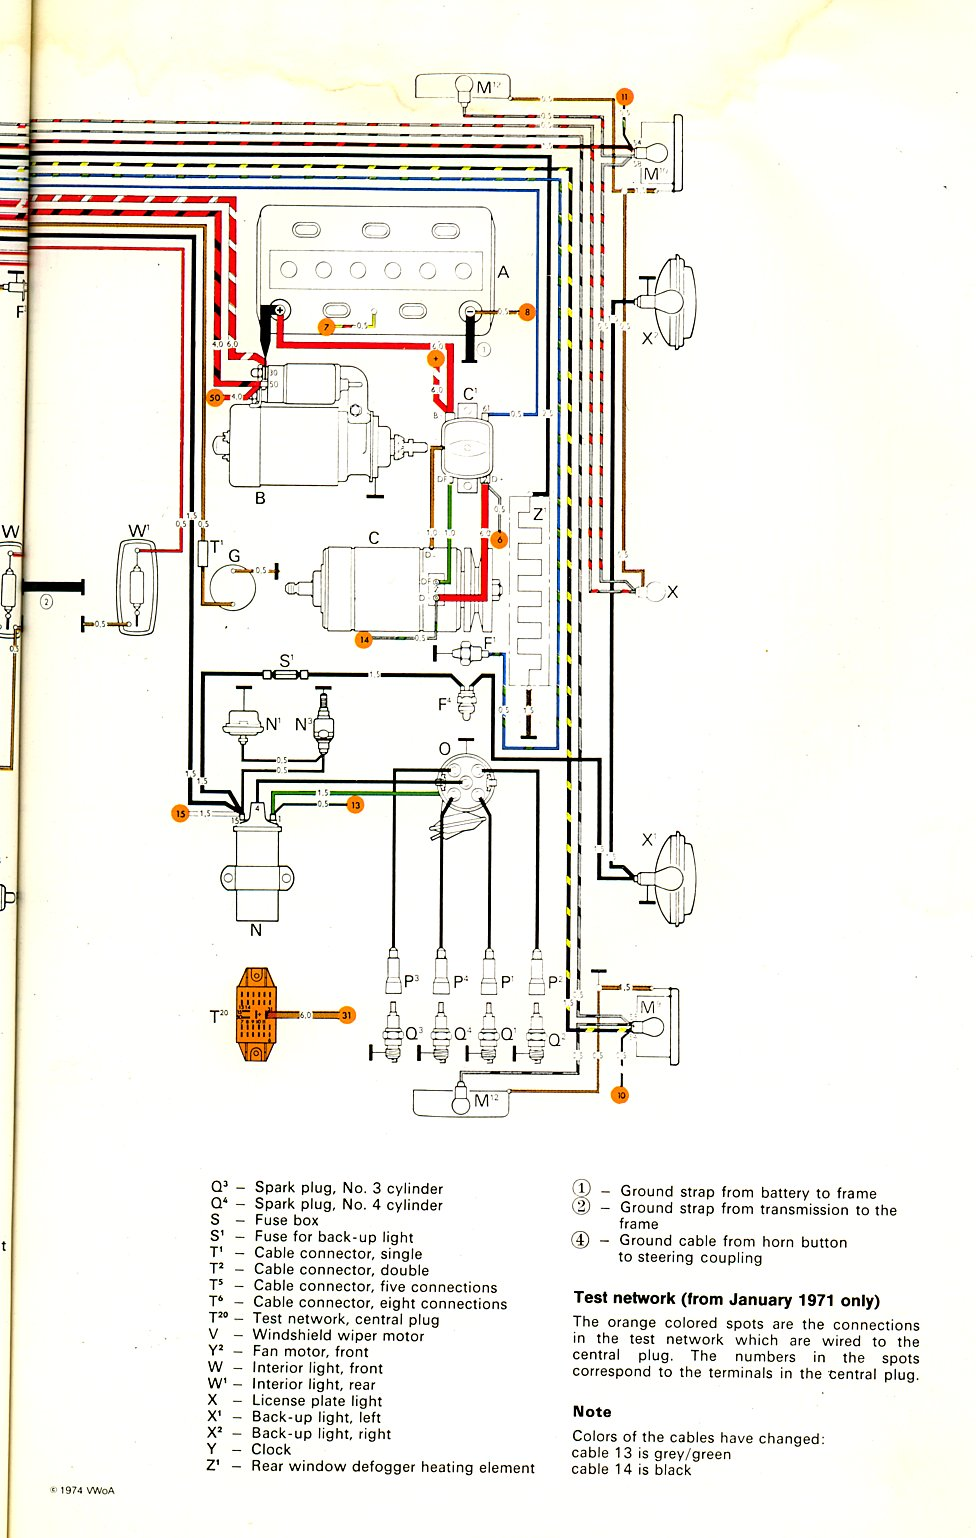 baybus_71b thesamba com type 2 wiring diagrams 1971 vw bus wiring diagram at highcare.asia